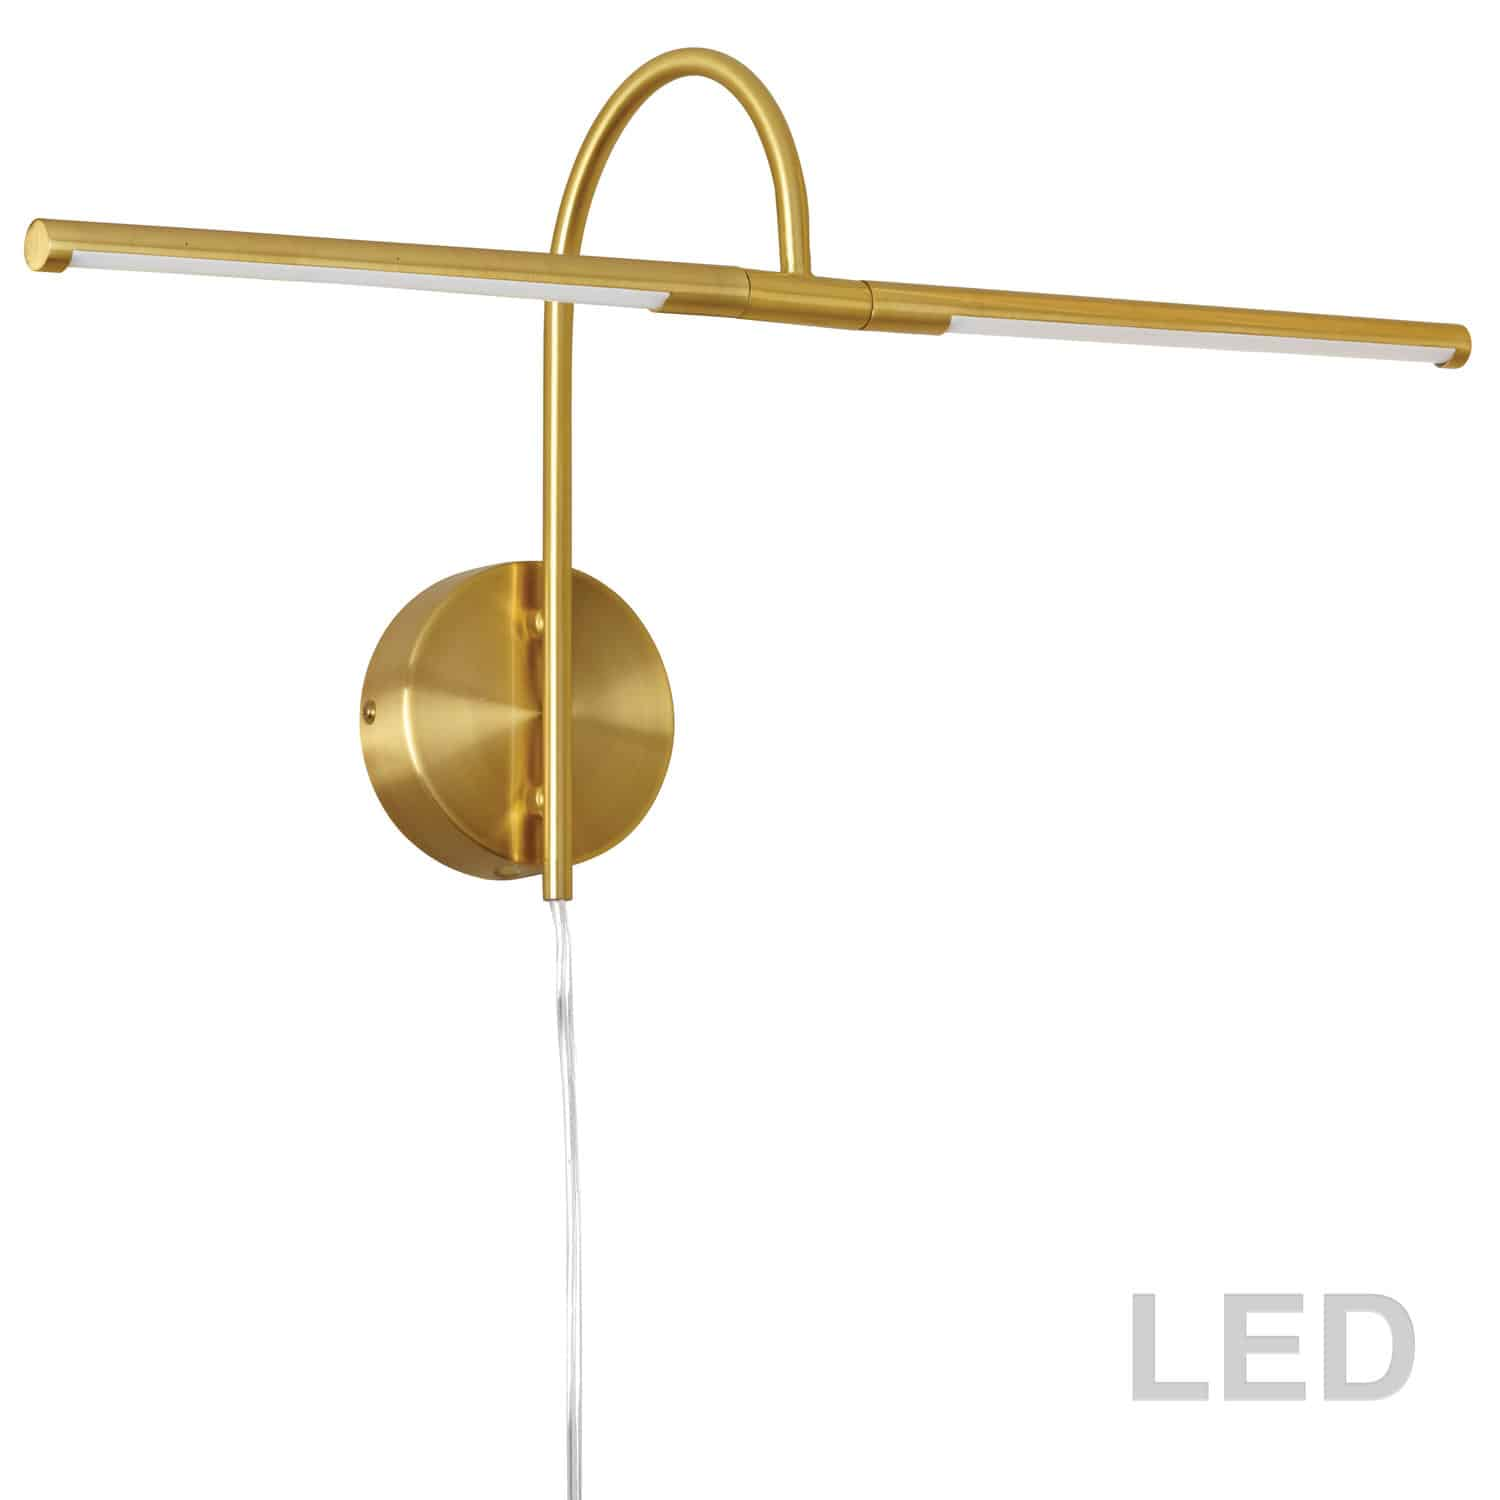 10W LED Picture Light Aged Brass Finish